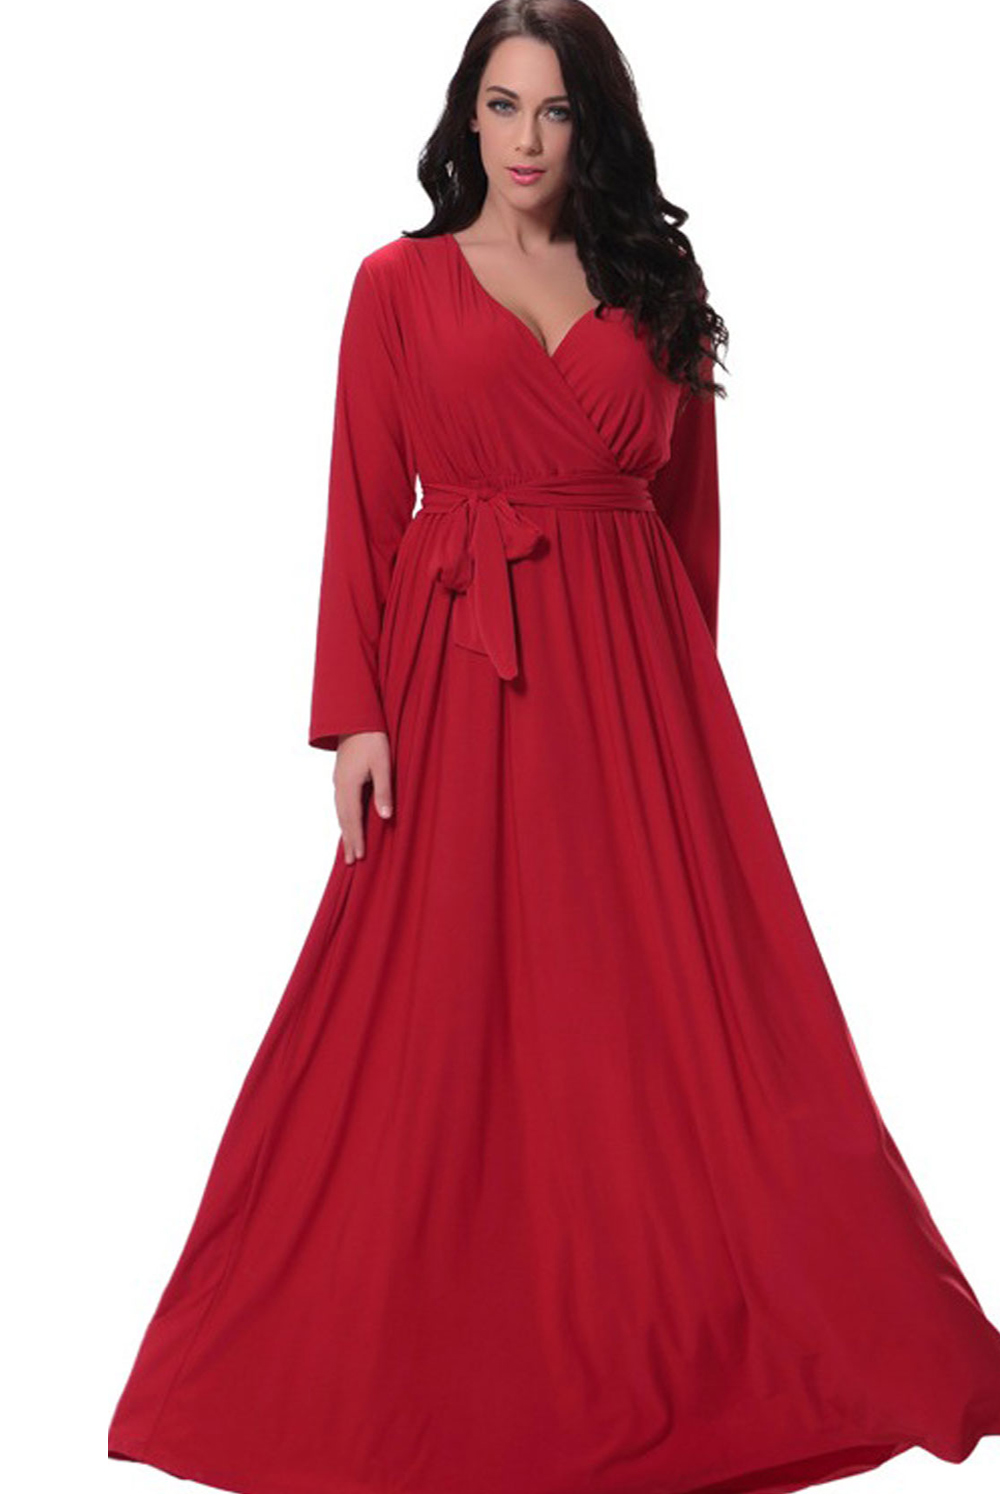 09cb524066e UNOMATCH WOMEN PLUS SIZE PLEATED MAXI GOWN PARTY DRESS RED ...